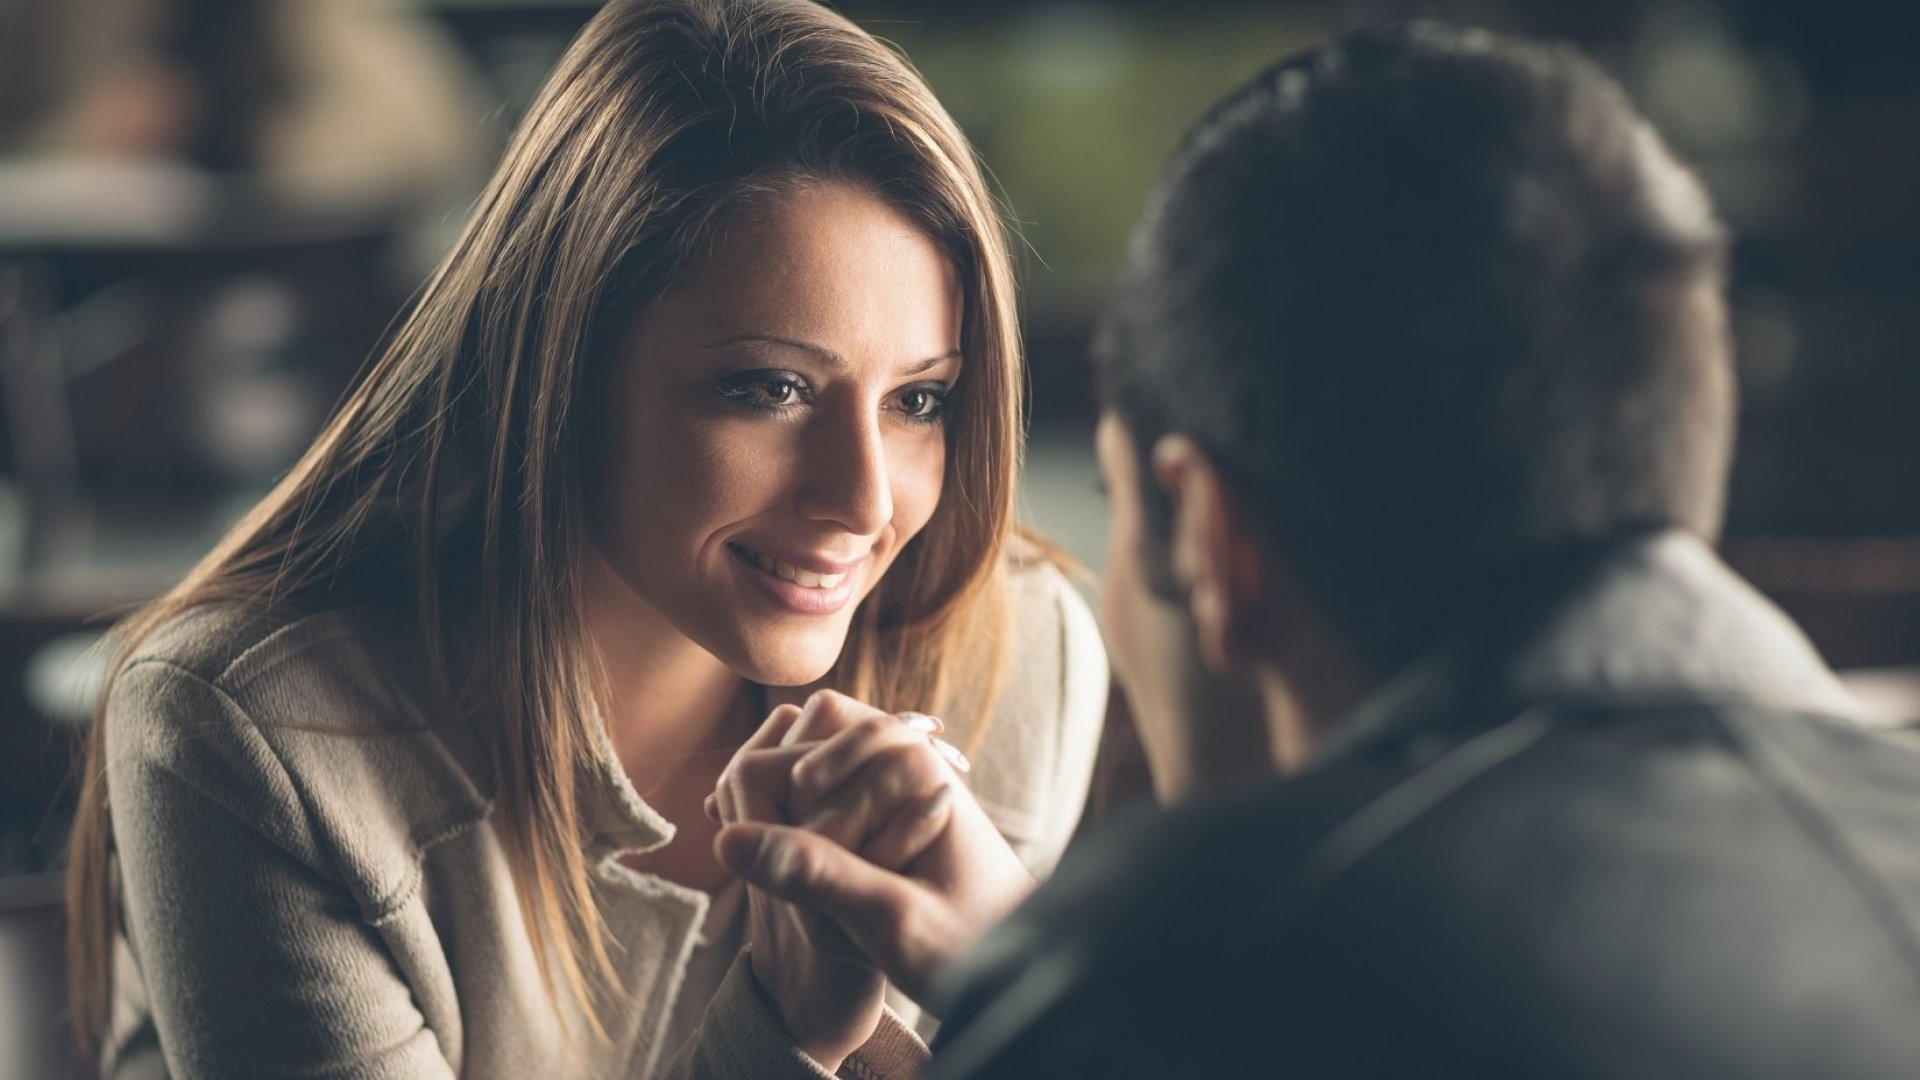 Want to Know If Someone Is Attracted to You? Their Voice Changes in 1 Simple Way